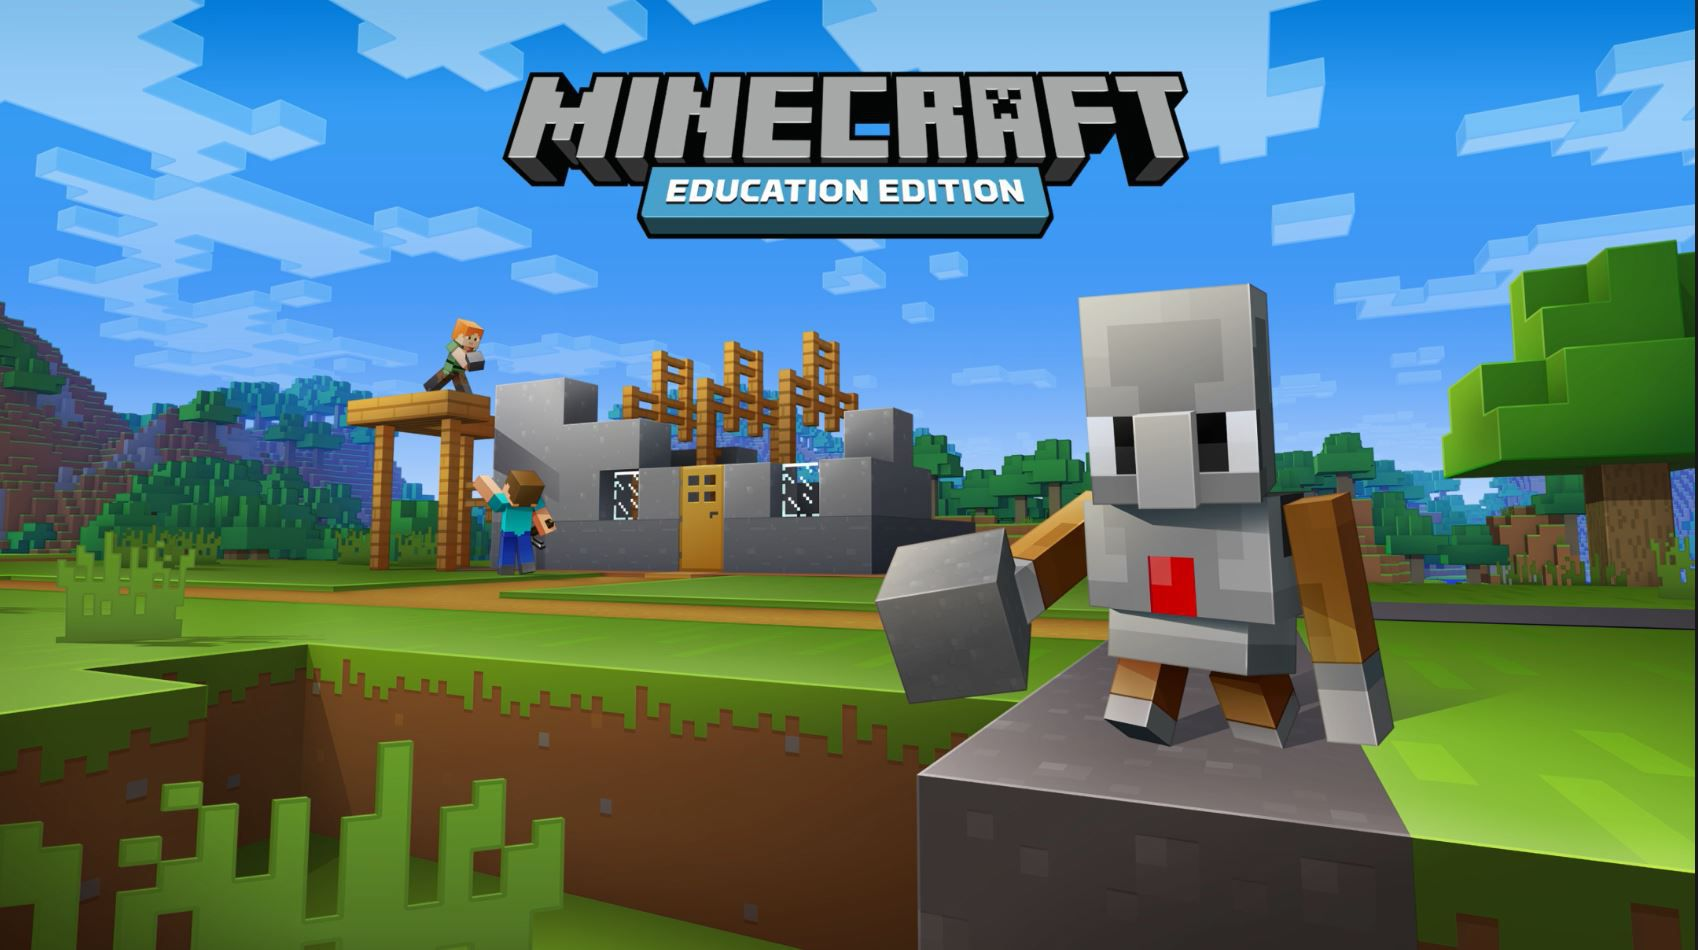 Minecraft Education Edition: The New Patch Will Add Speech Synthesis